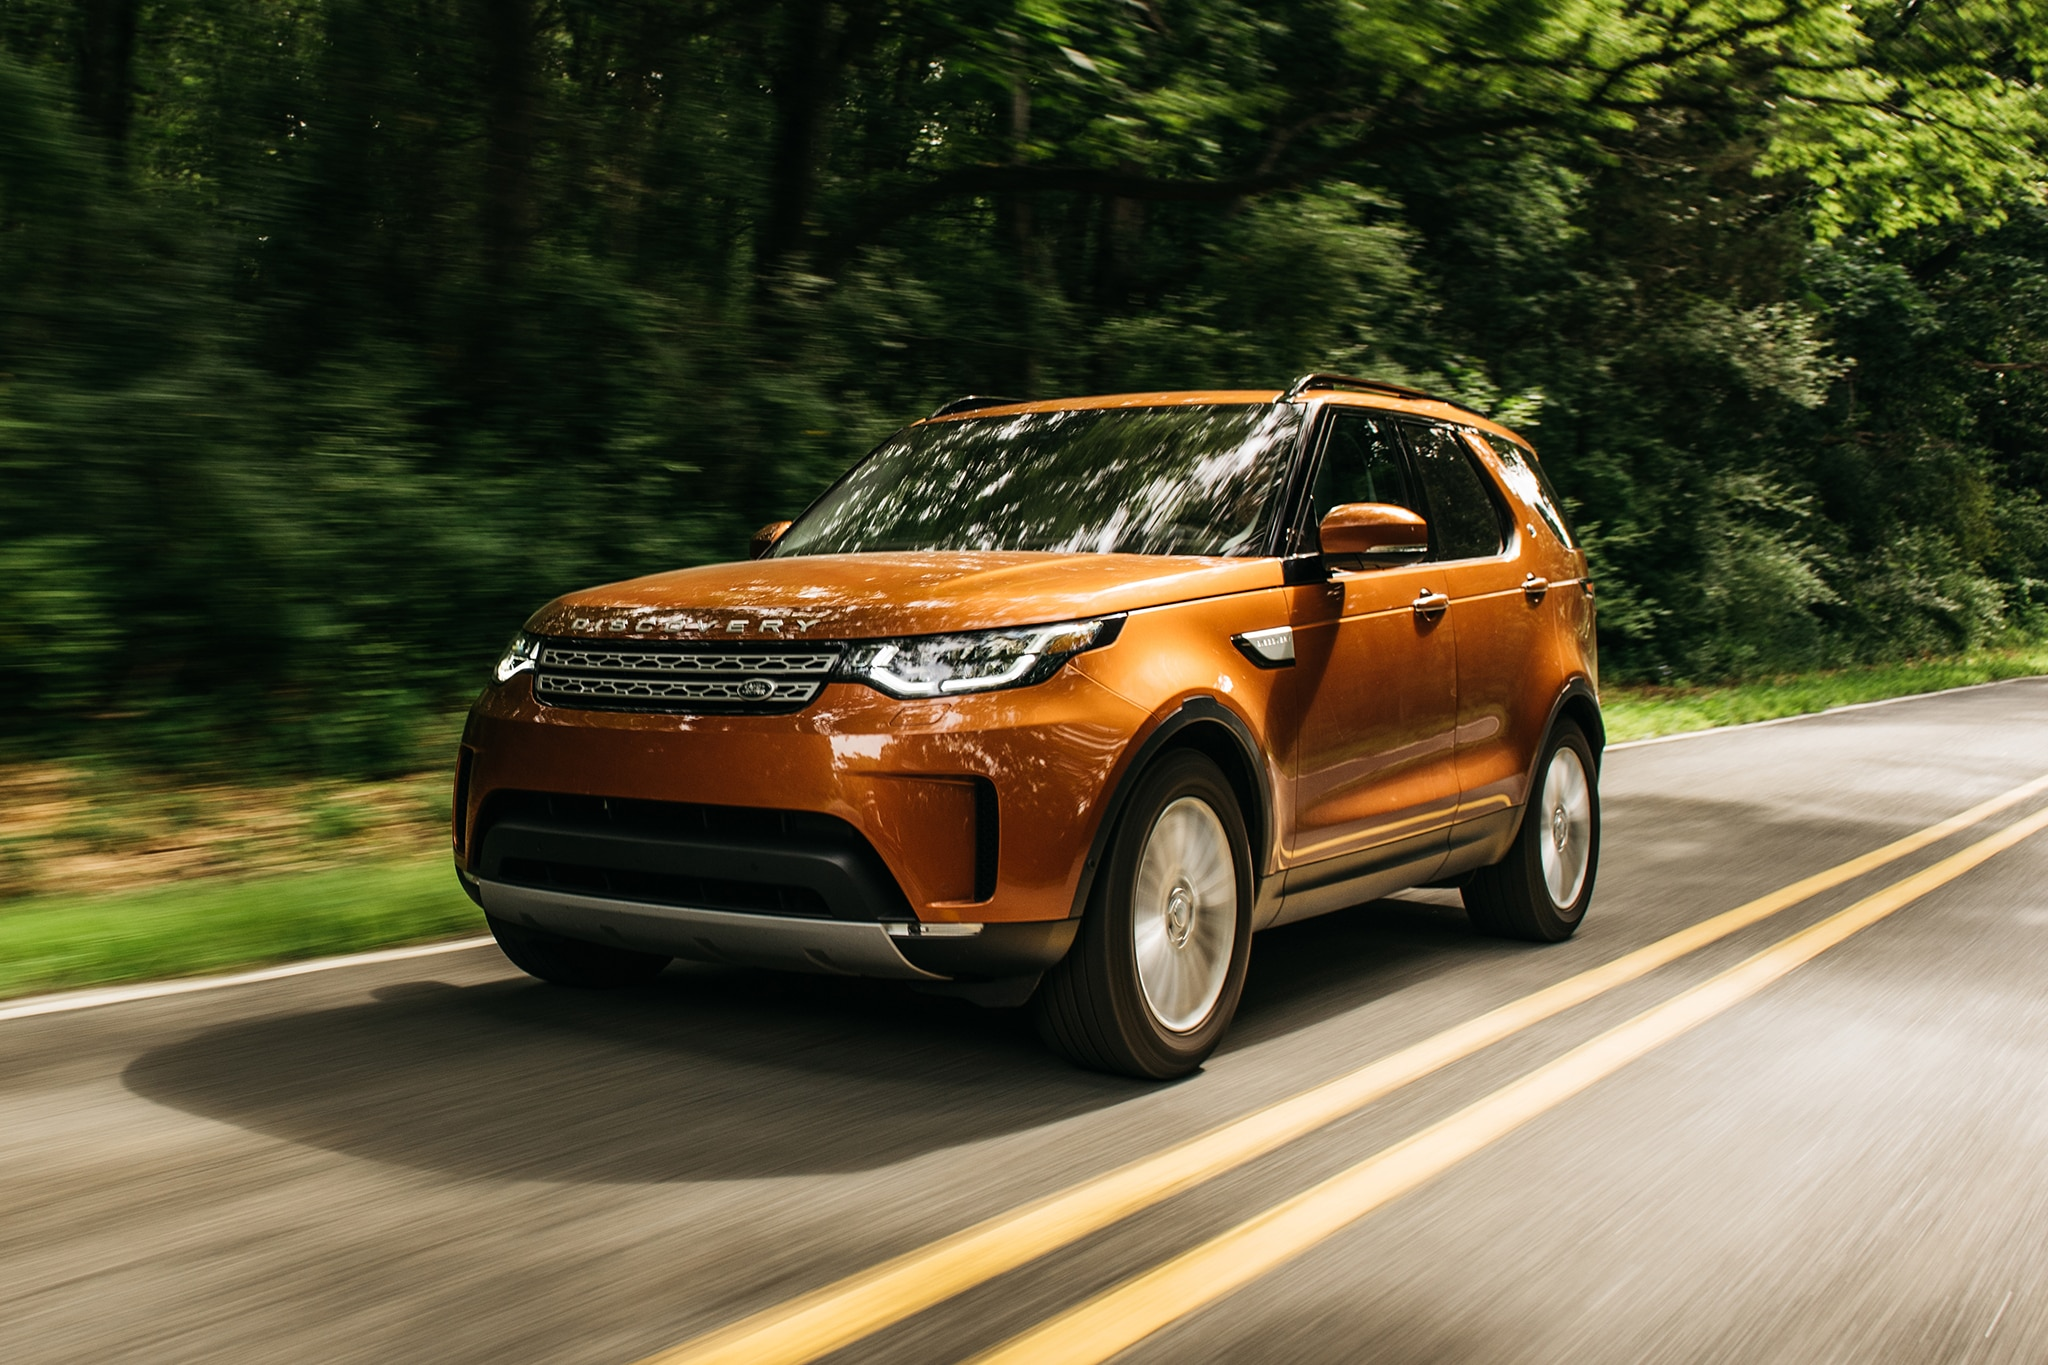 2017 Land Rover Discovery Td6 HSE Front Three Quarter In Motion 02